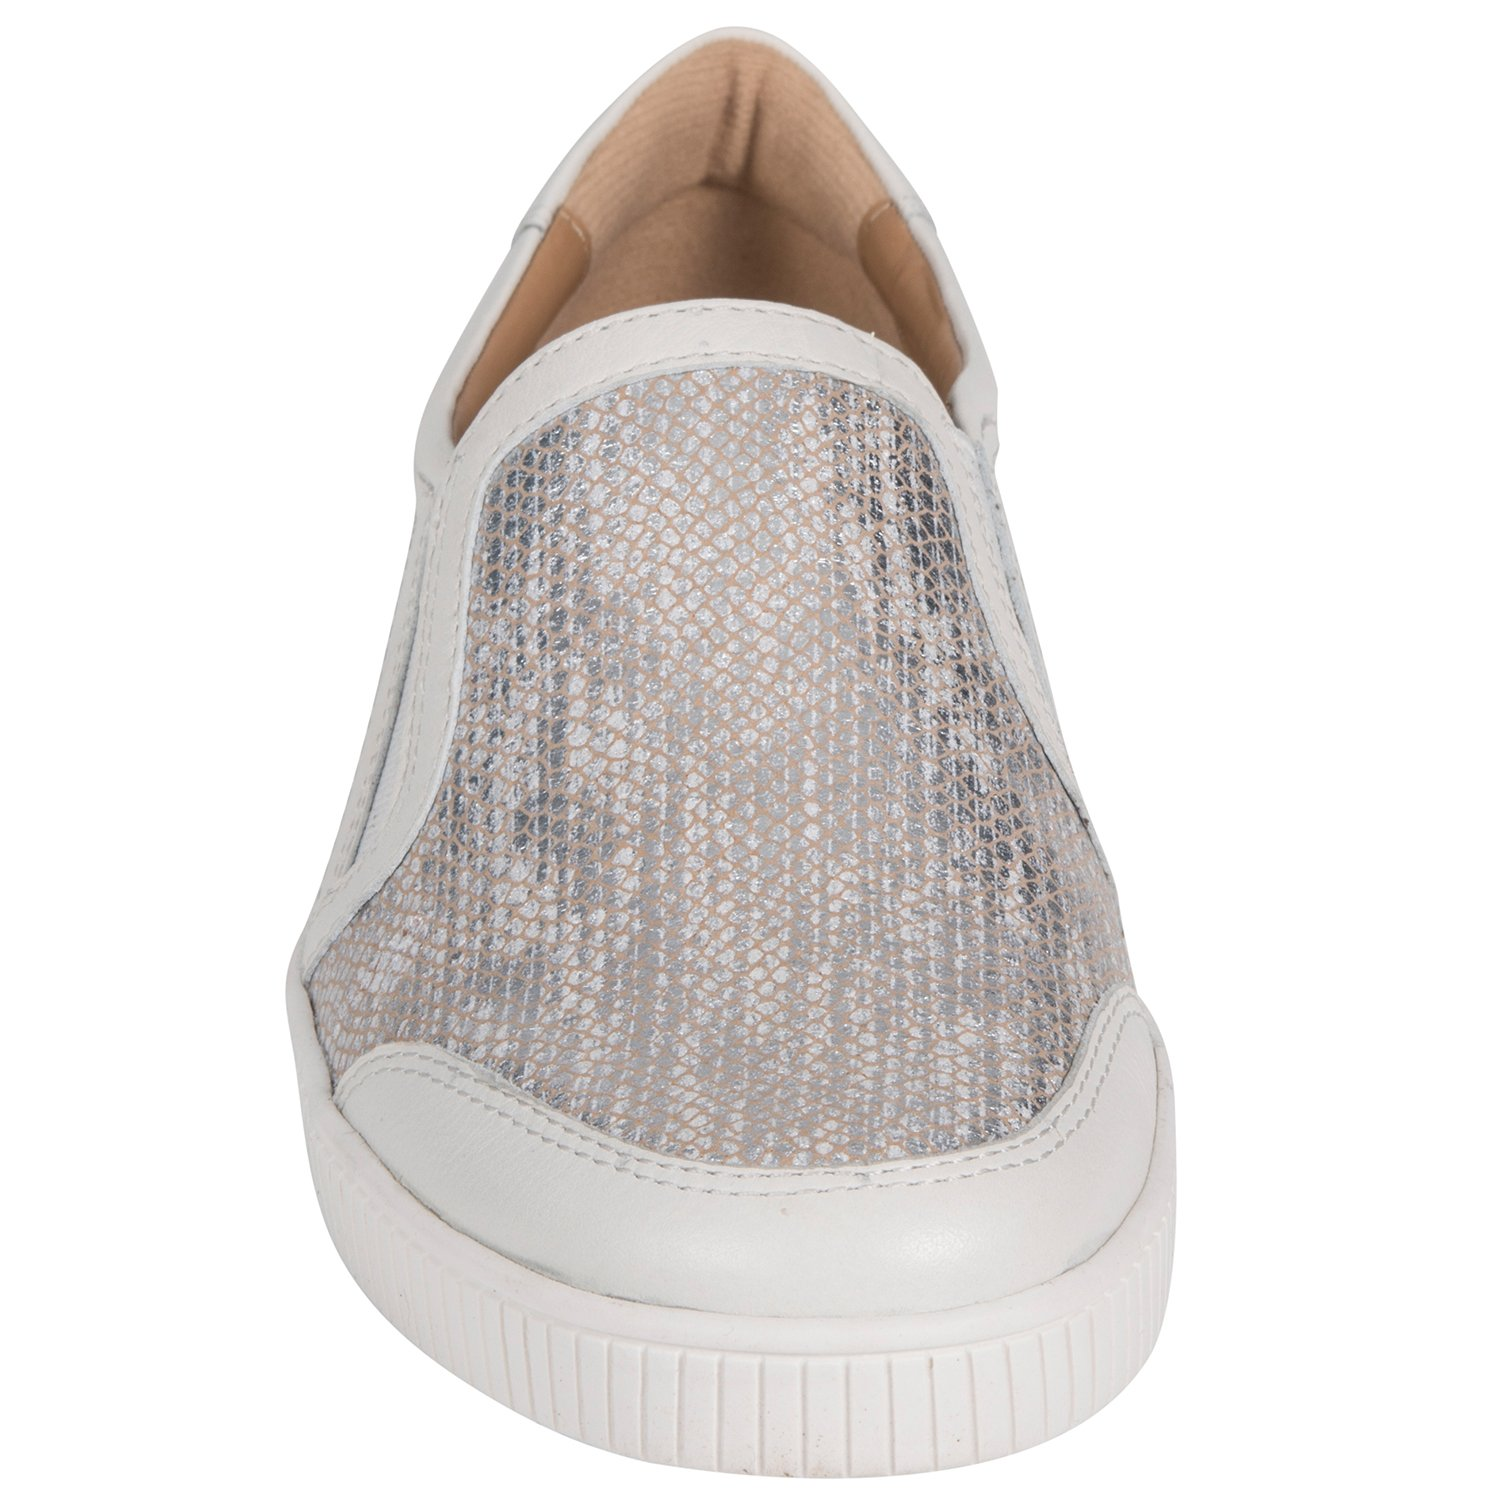 Earth Shoes Currant B078TN896P 11 B(M) US|Light Silver